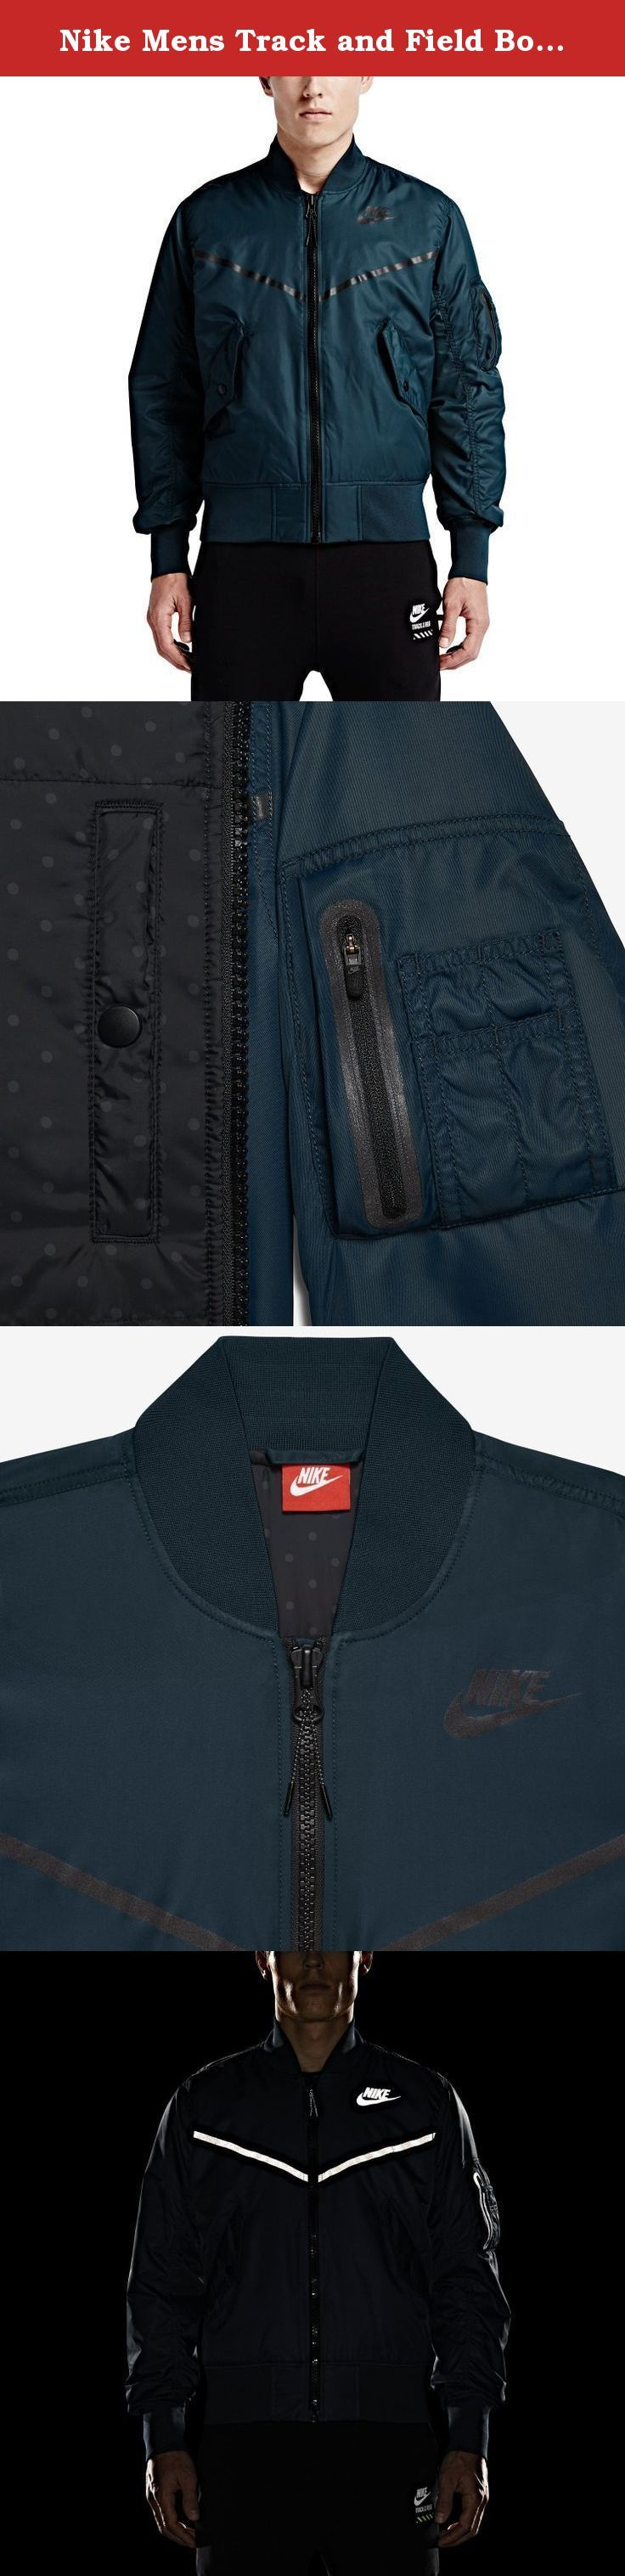 Nike Mens Track and Field Bomber Jacket (Medium, Midnight Teal). You'll be geared up for takeoff in the Men's Nike Track and Field Bomber Jacket. Track goes airborne with a military-inspired look that features iconic Nike Windrunner details, like a reflective chevron on the chest and the Nike corporate logo. This jacket's body fabric has a soft feel and a durable build that will keep you comfortable everywhere you go. The satin-sateen nylon fabric is long-lasting and offers a soft, smooth...